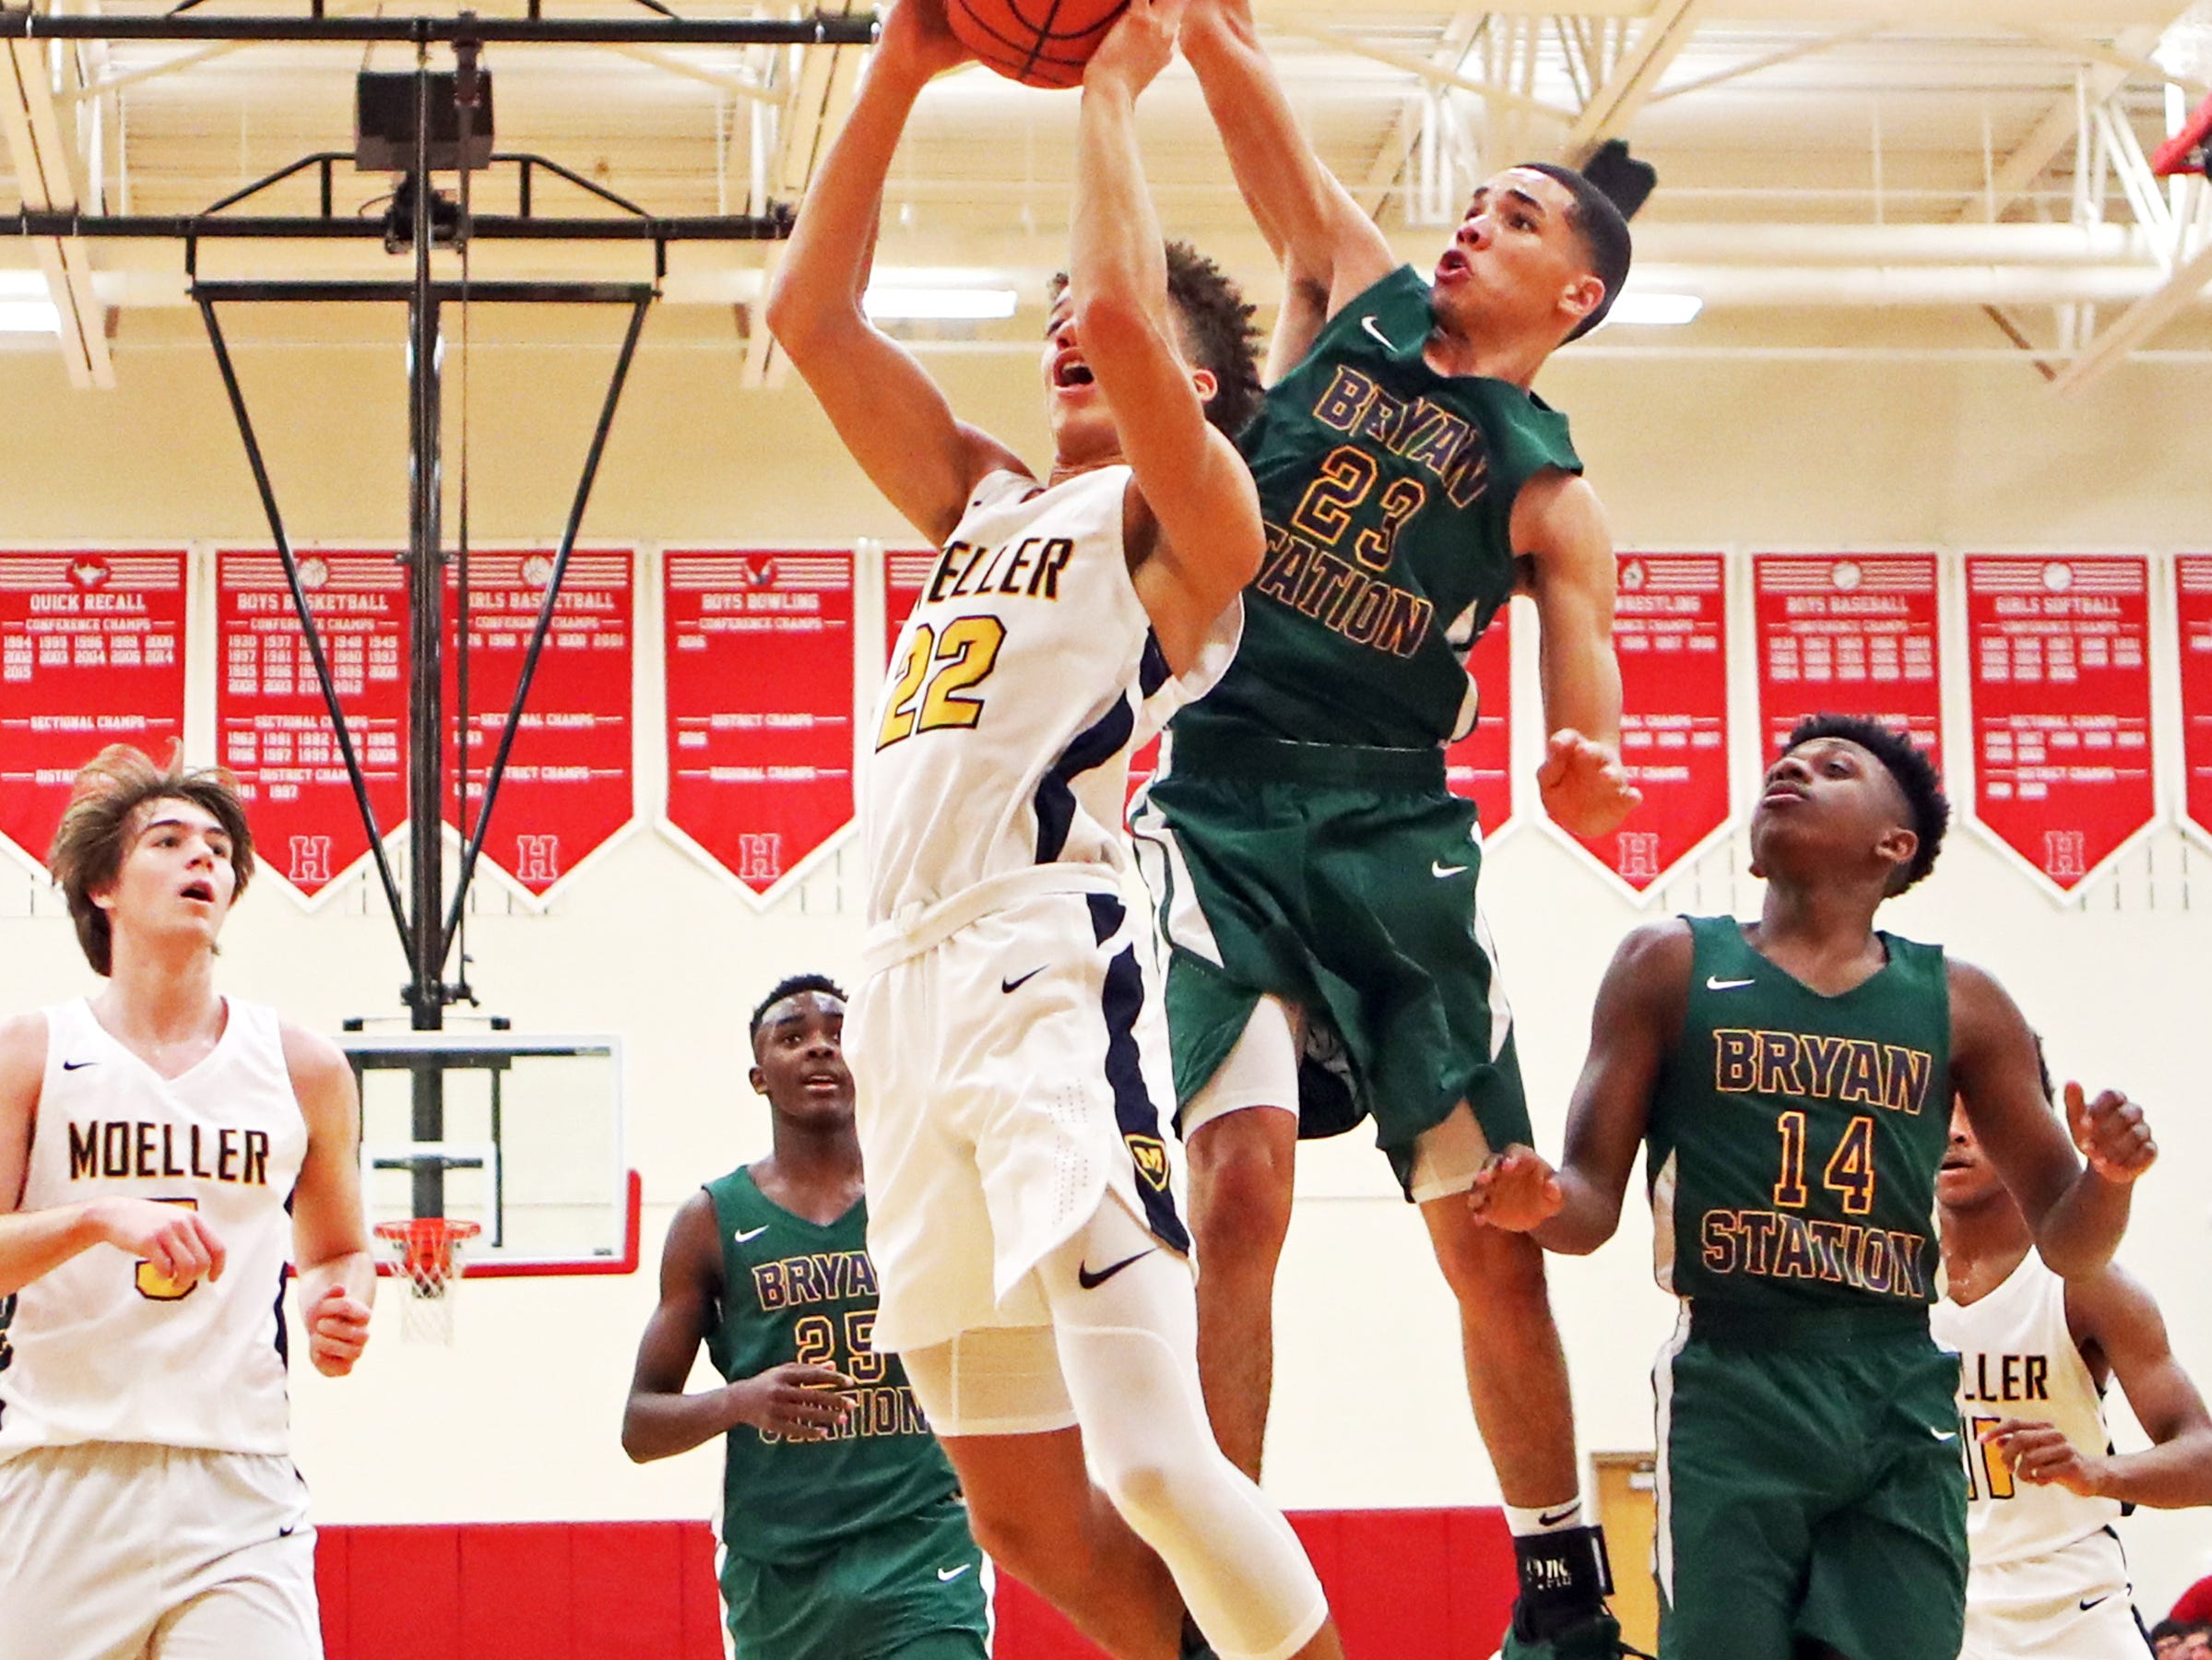 Moeller forward Max Land drives and scores at the Ohio Valley Hoops Classic at Hillsboro High School. Moeller defeated Bryan Station 85-42.